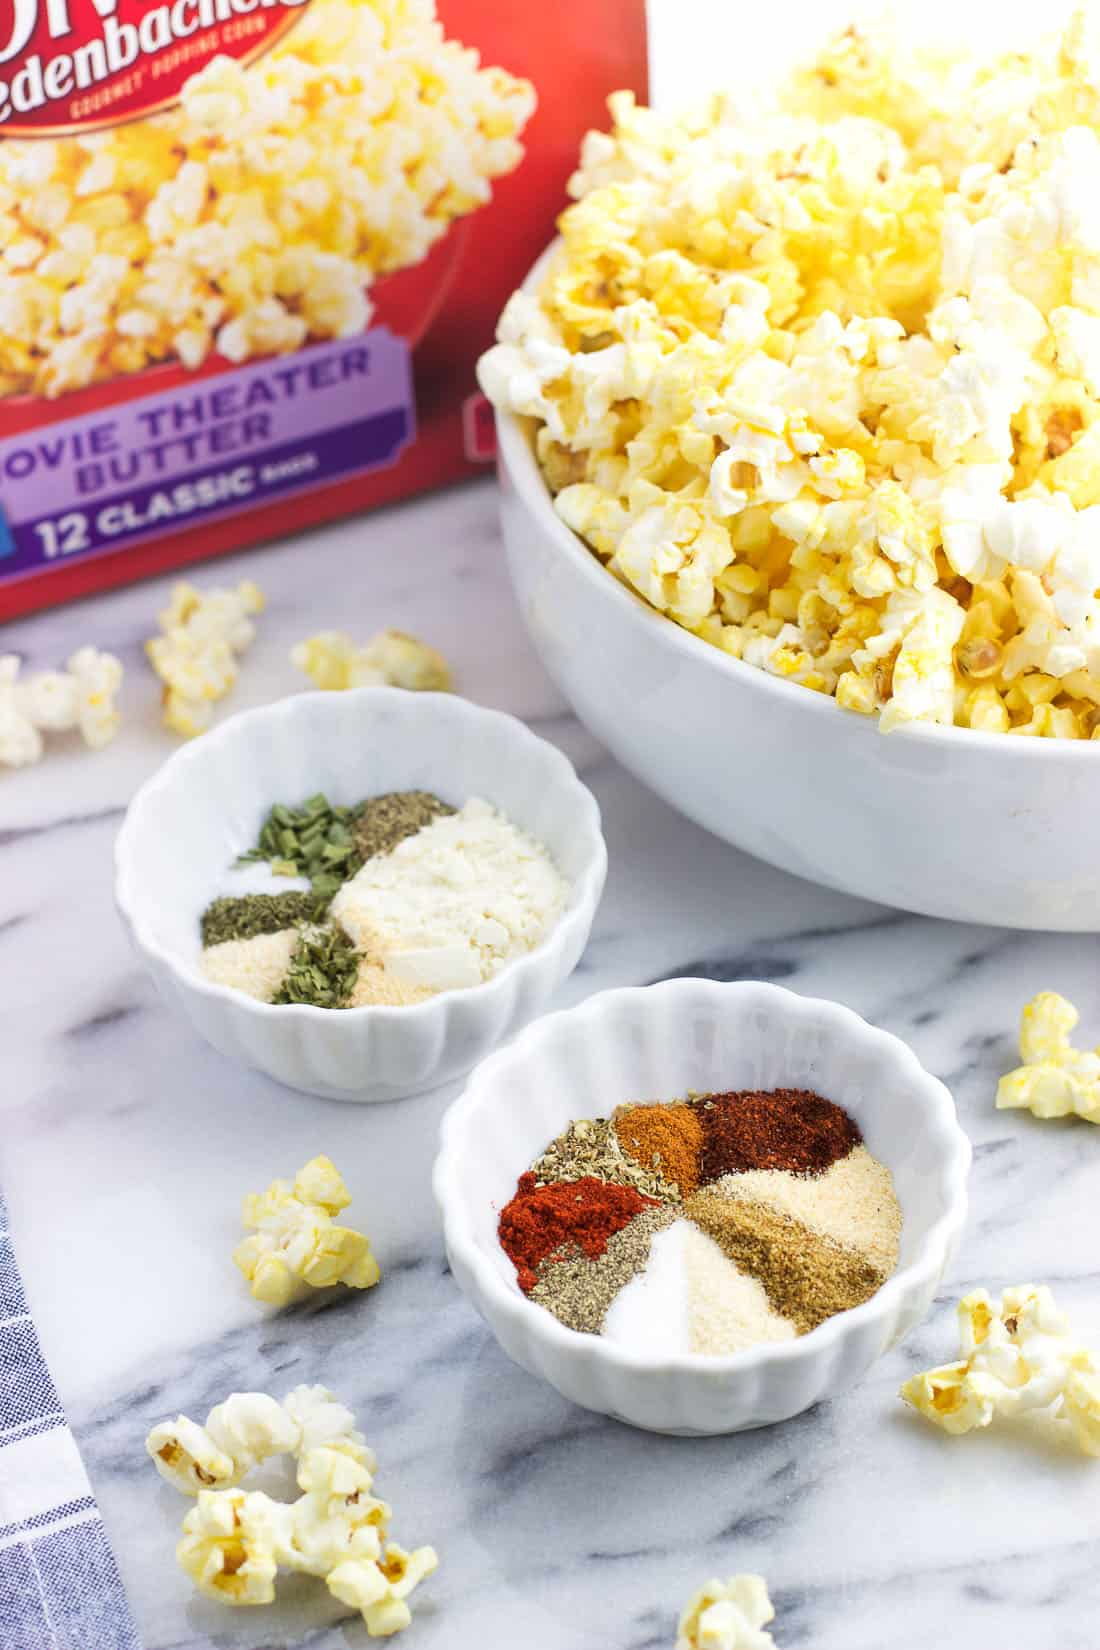 Two small bowls filled with spice mixes next to a large bowl of popped butter popcorn